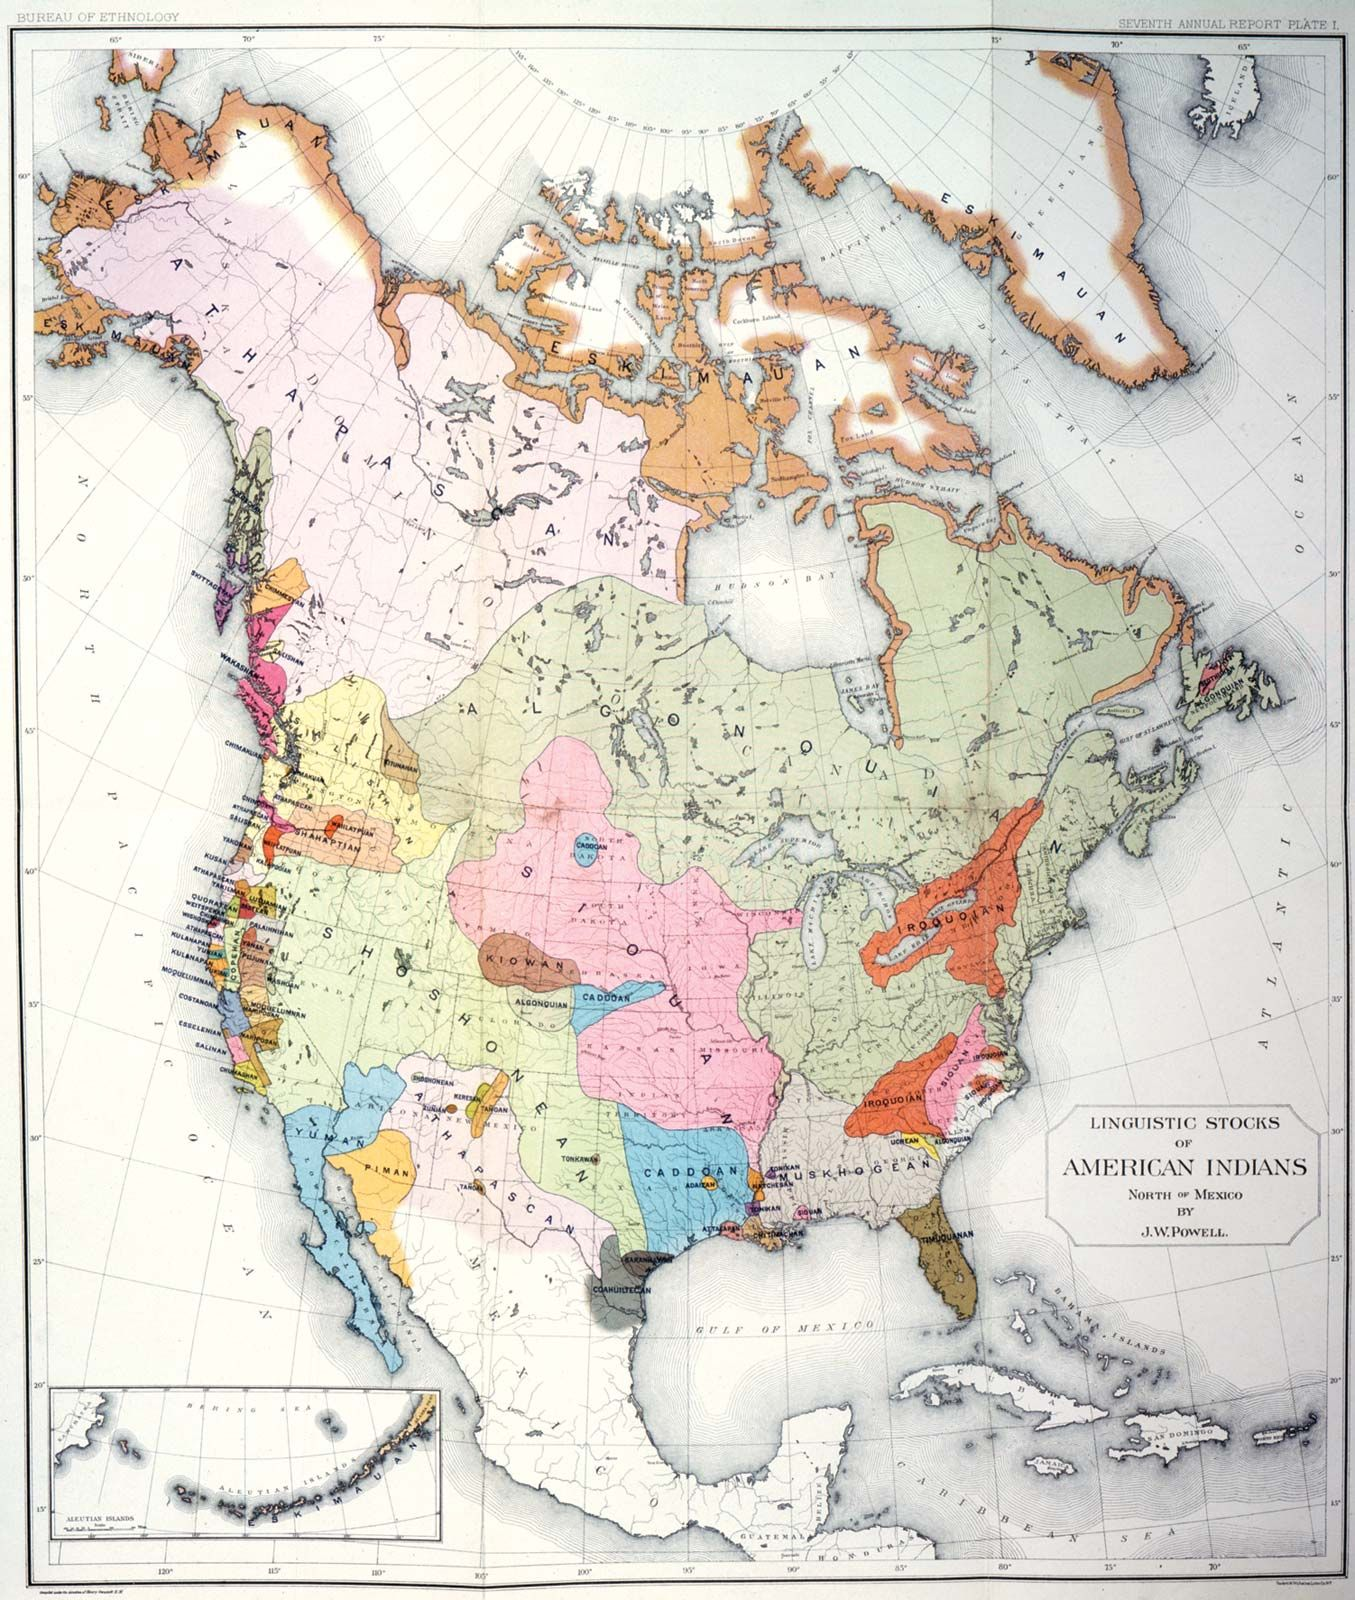 Major Linguistic Groups Native American Map.Major Linguistic Groups Native American Map